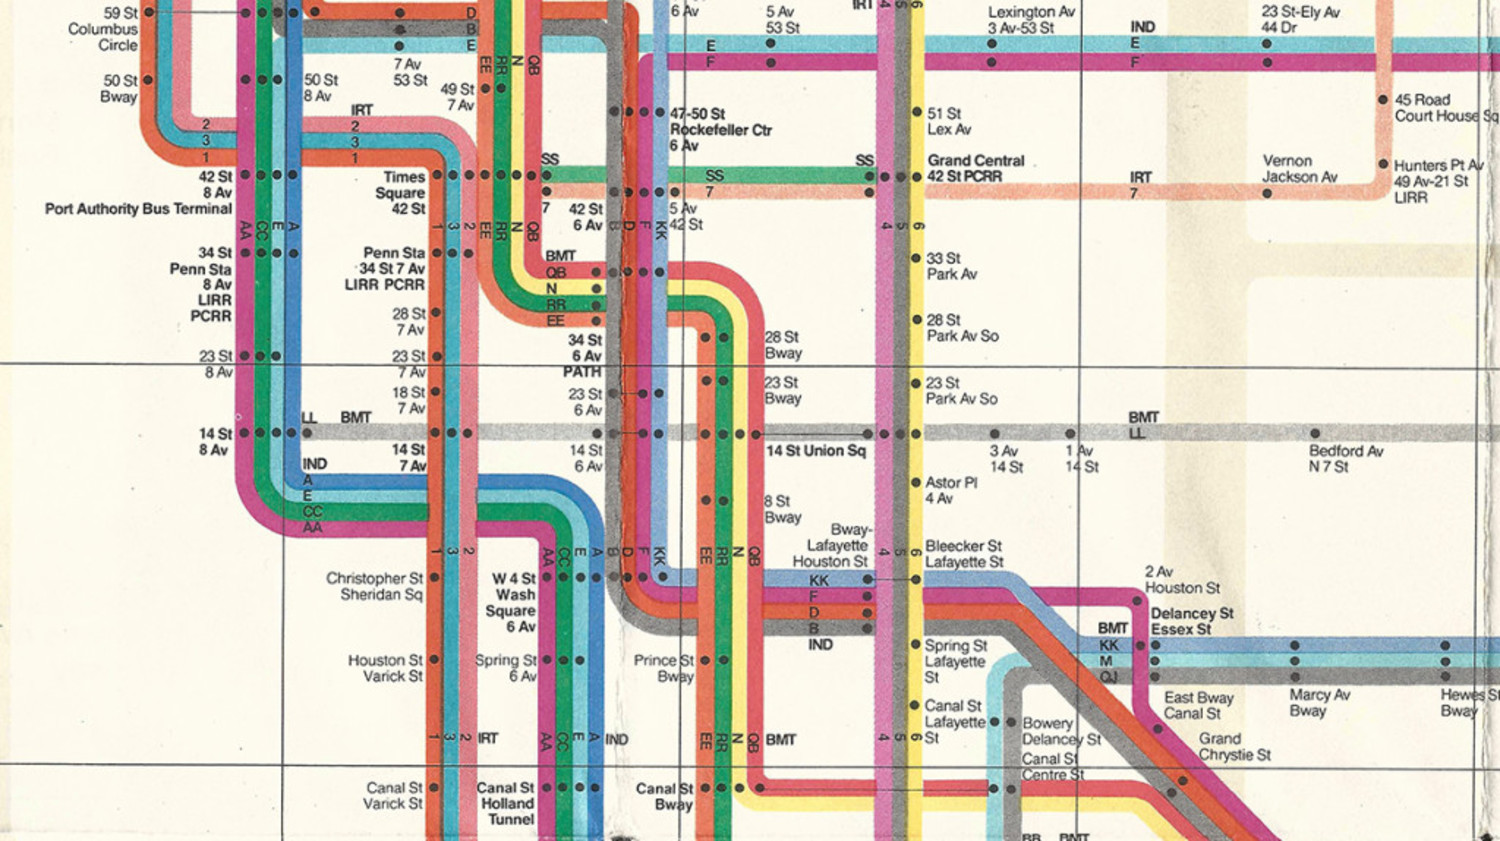 In 1972, Massimo Vignelli's famous, streamlined, version of the map debuted.